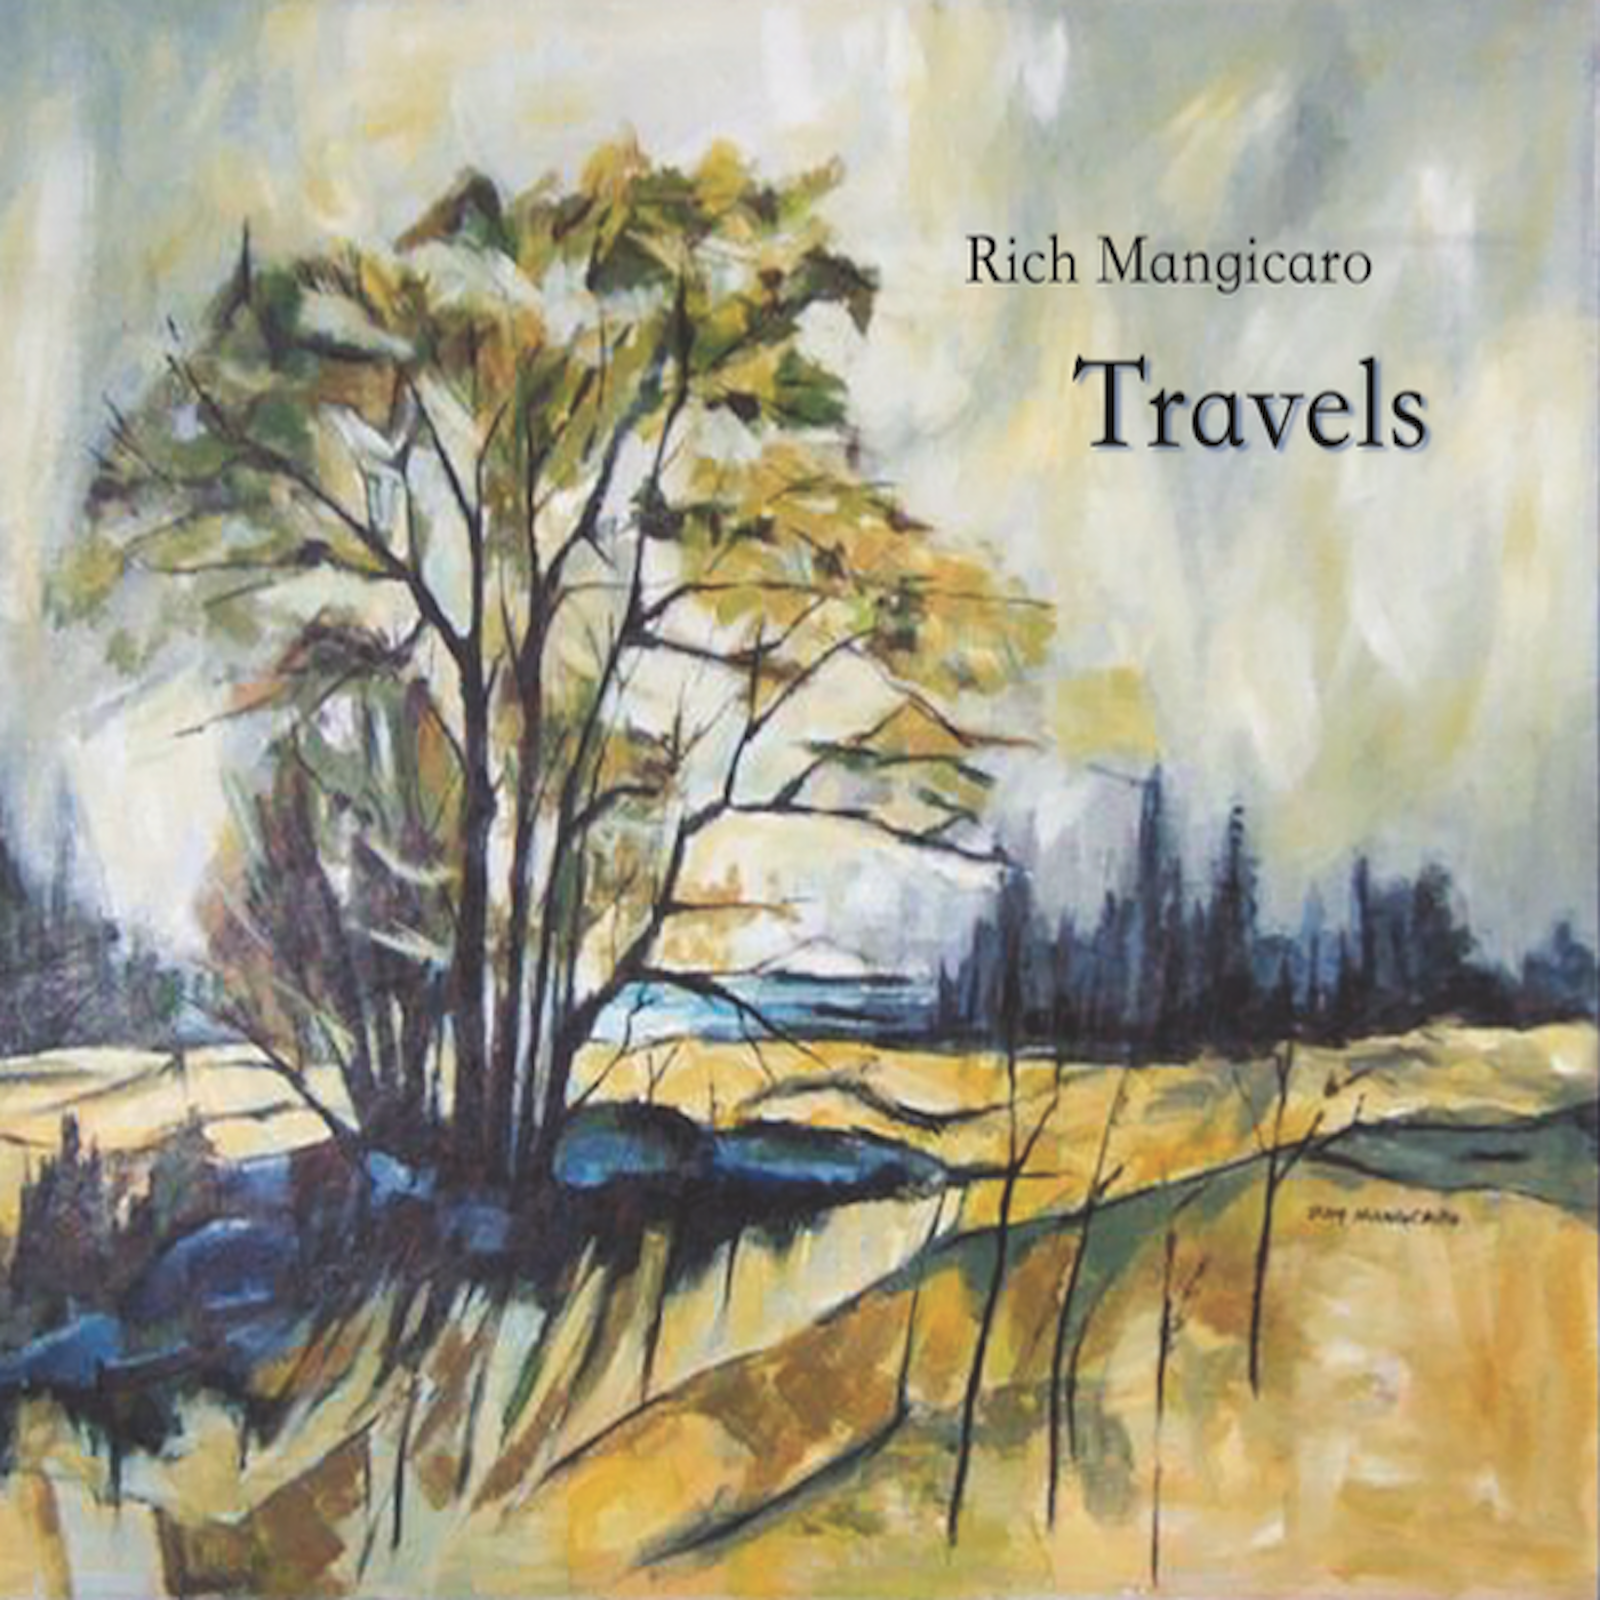 Travels - Rich Mangicaro's debut album